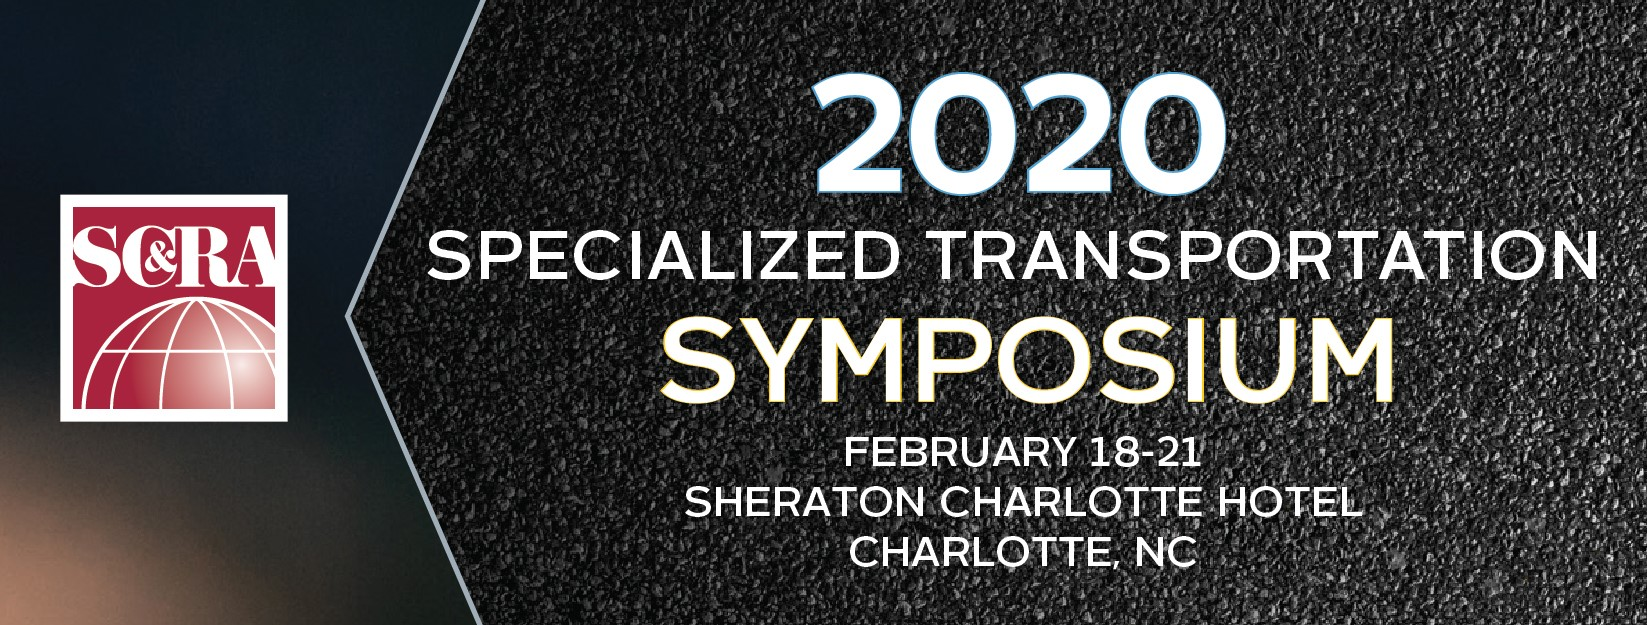 2020 Specialized Transportation Symposium